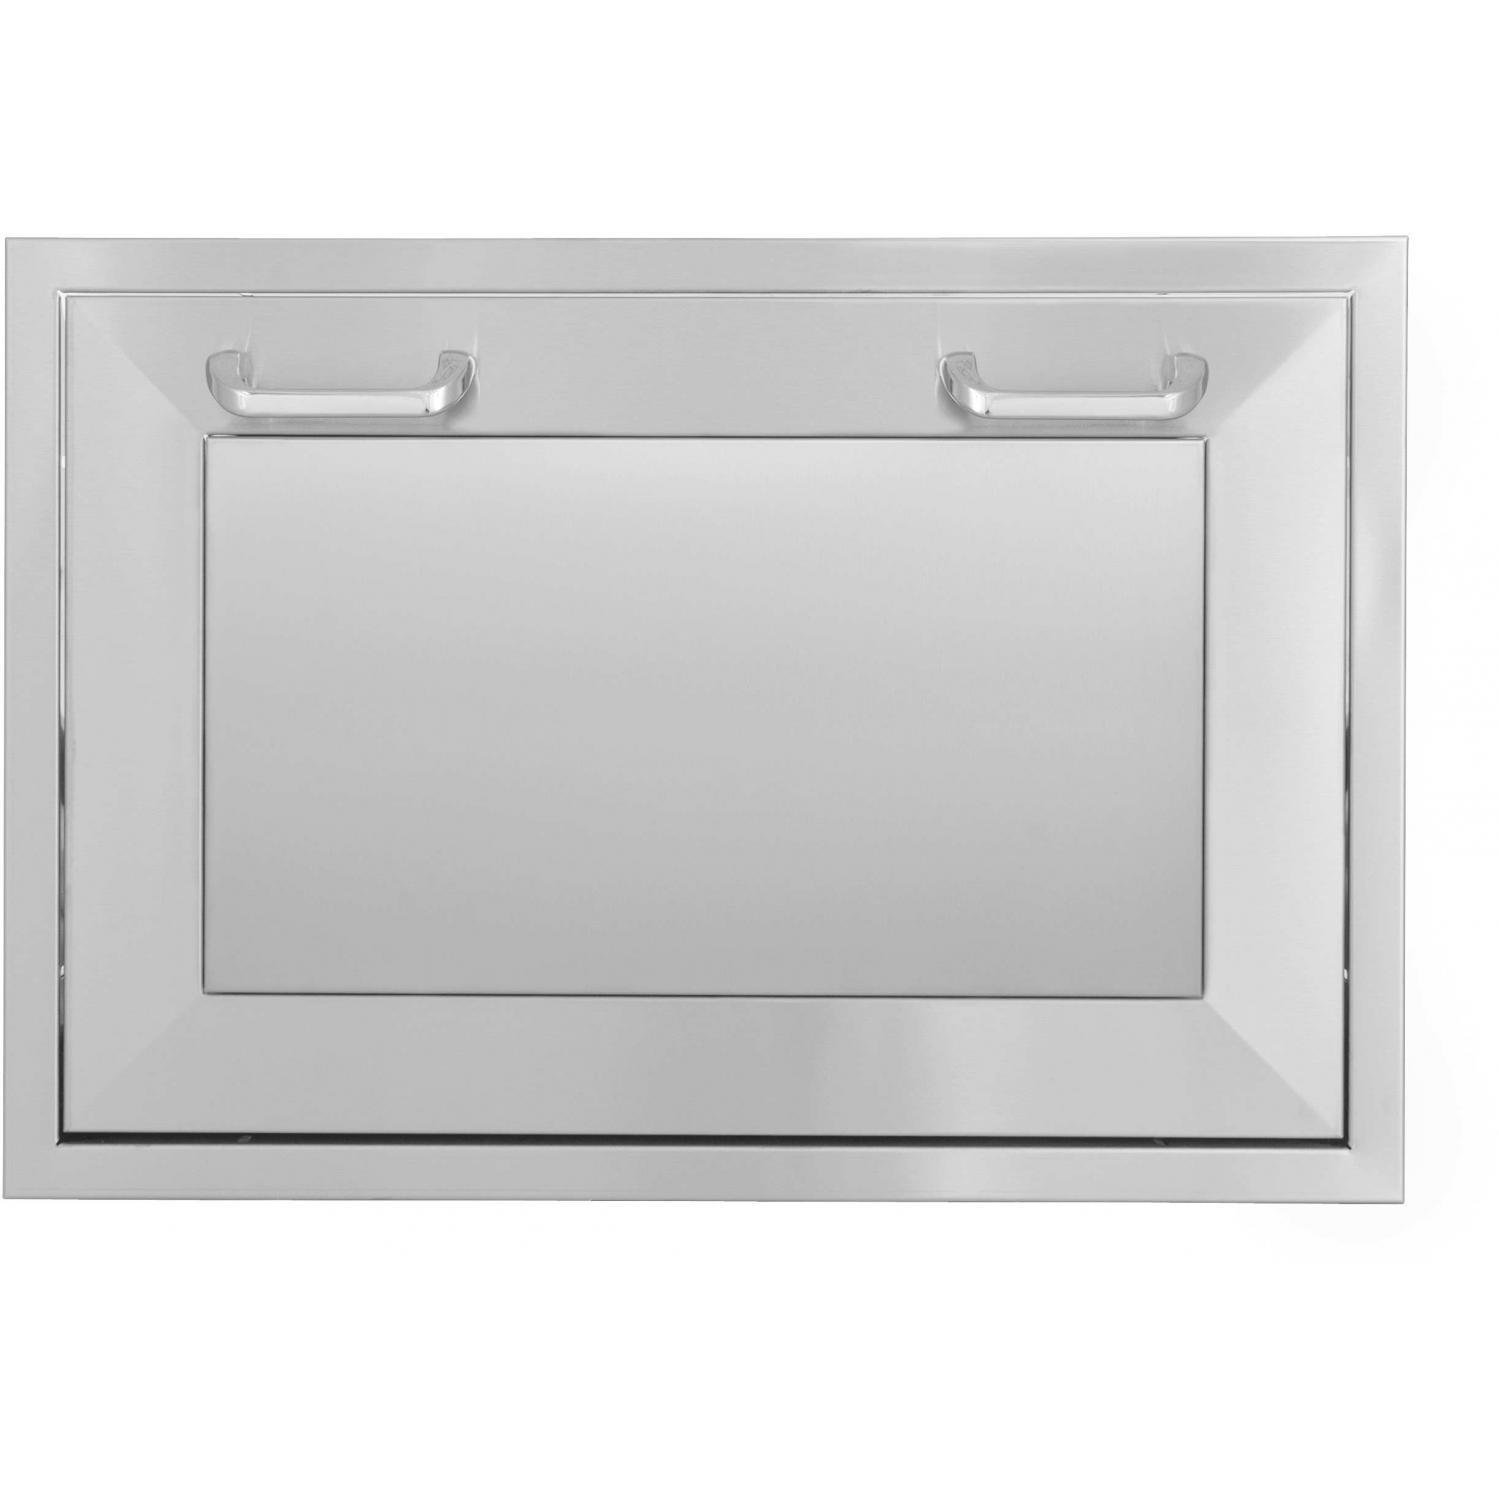 Bbqguys.com Kingston Panel Series 30-inch Stainless Steel Roll-out Ice Chest Storage Drawer